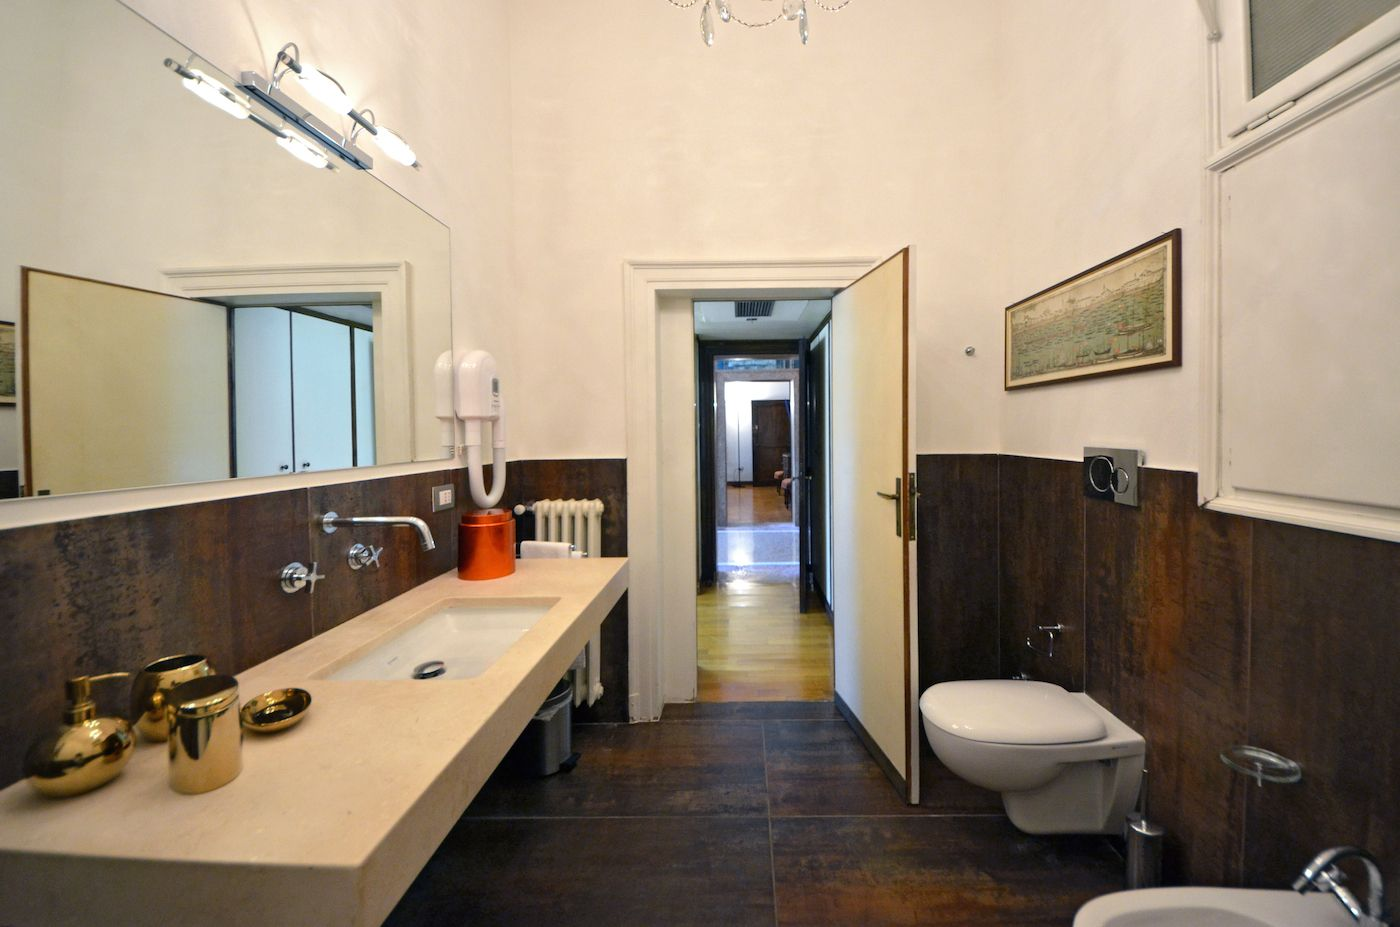 bathroom of the master bedroom